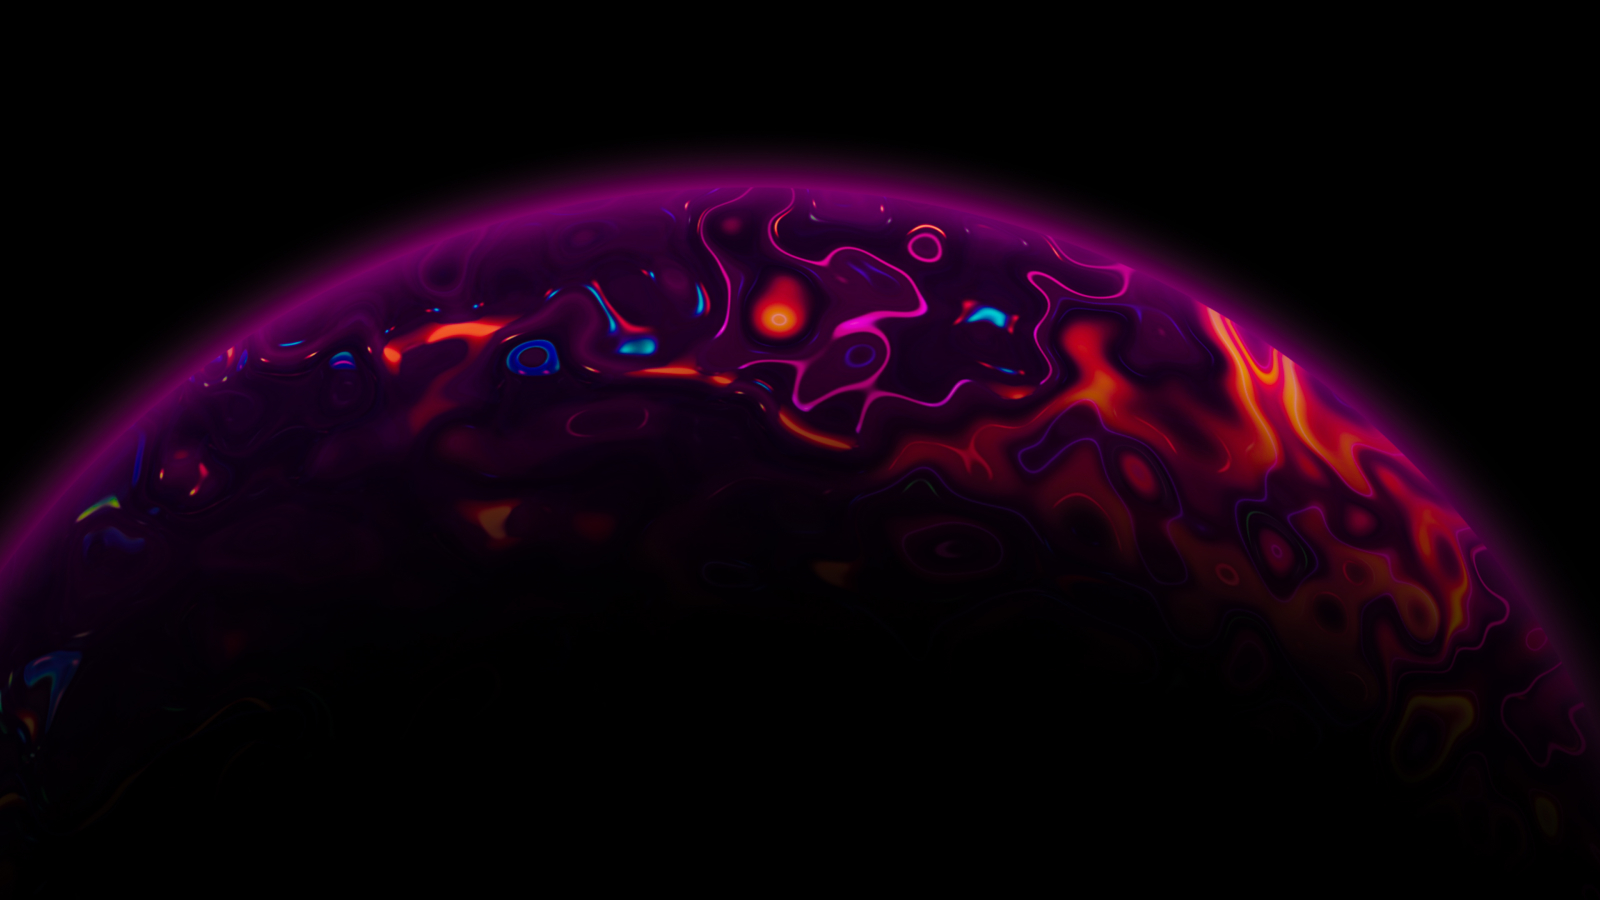 1600x900 Artistic Purple Planet 1600x900 Resolution